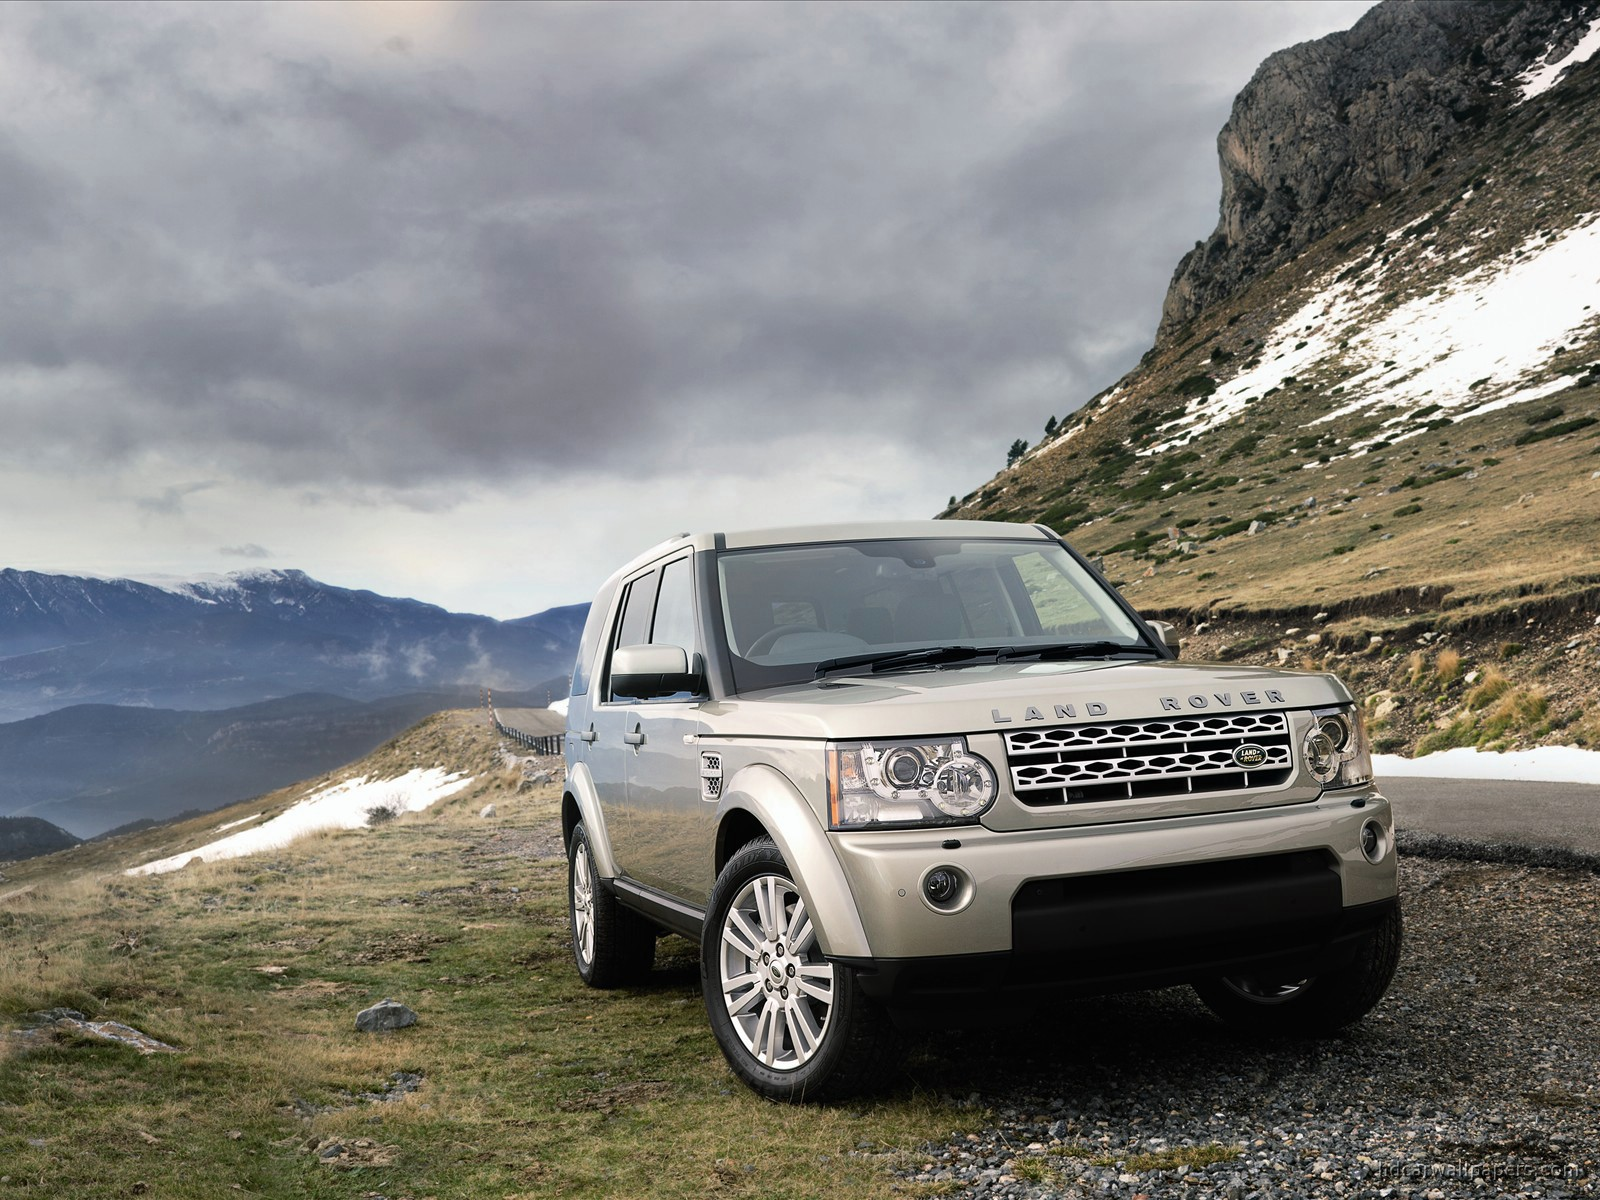 2010 Land Rover Discovery 2 Wallpaper